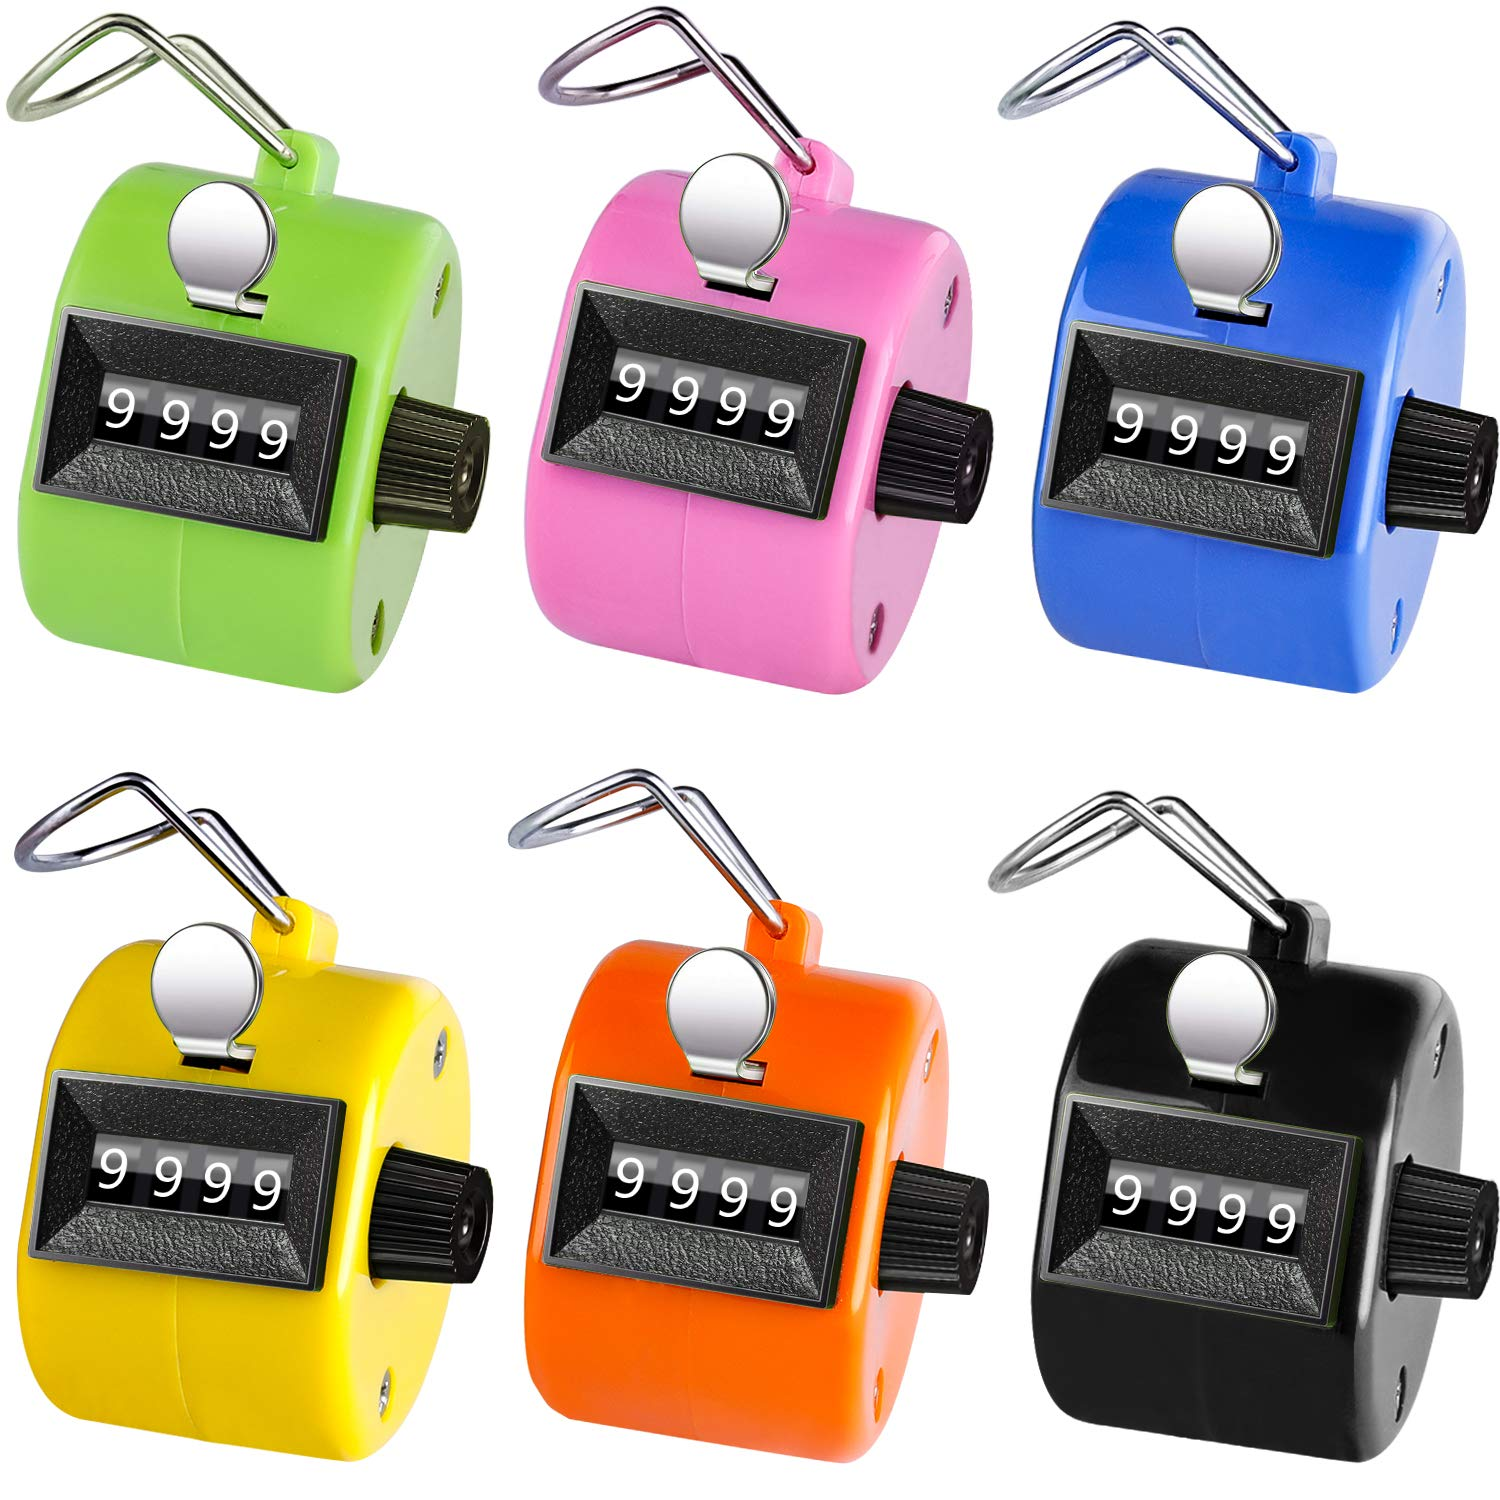 KTRIO Pack of 6 Color Hand Tally Counter 4-Digit Tally Counters Mechanical Palm Counter Clicker Counter Handheld Pitch Click Counter Number Count for Row, People, Golf & Knitting, Assorted Colors 71XGZuONwWL